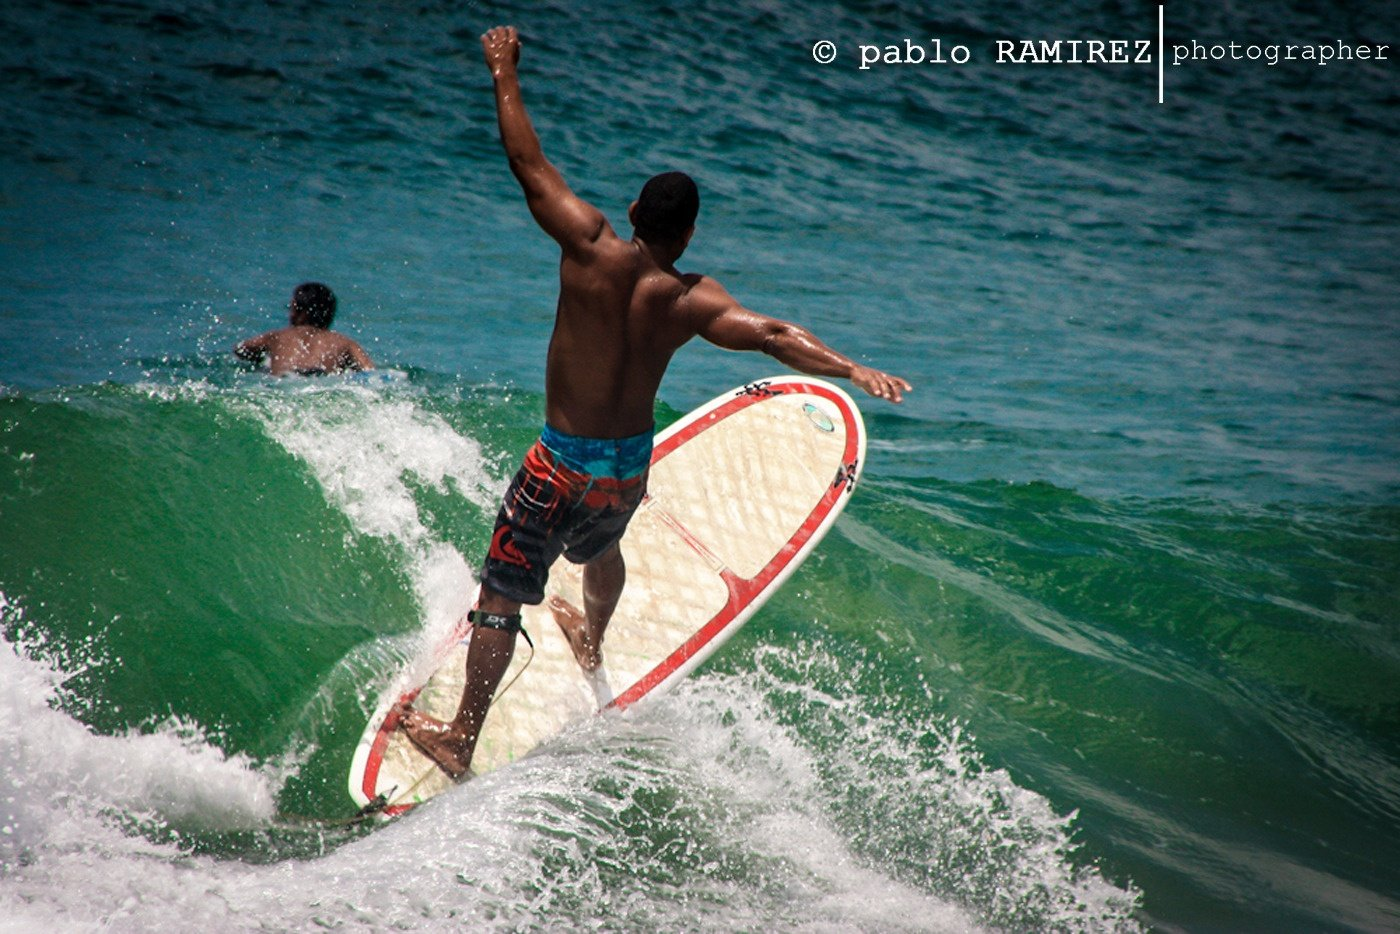 pablo RAMIREZ's photo of Los Cocos